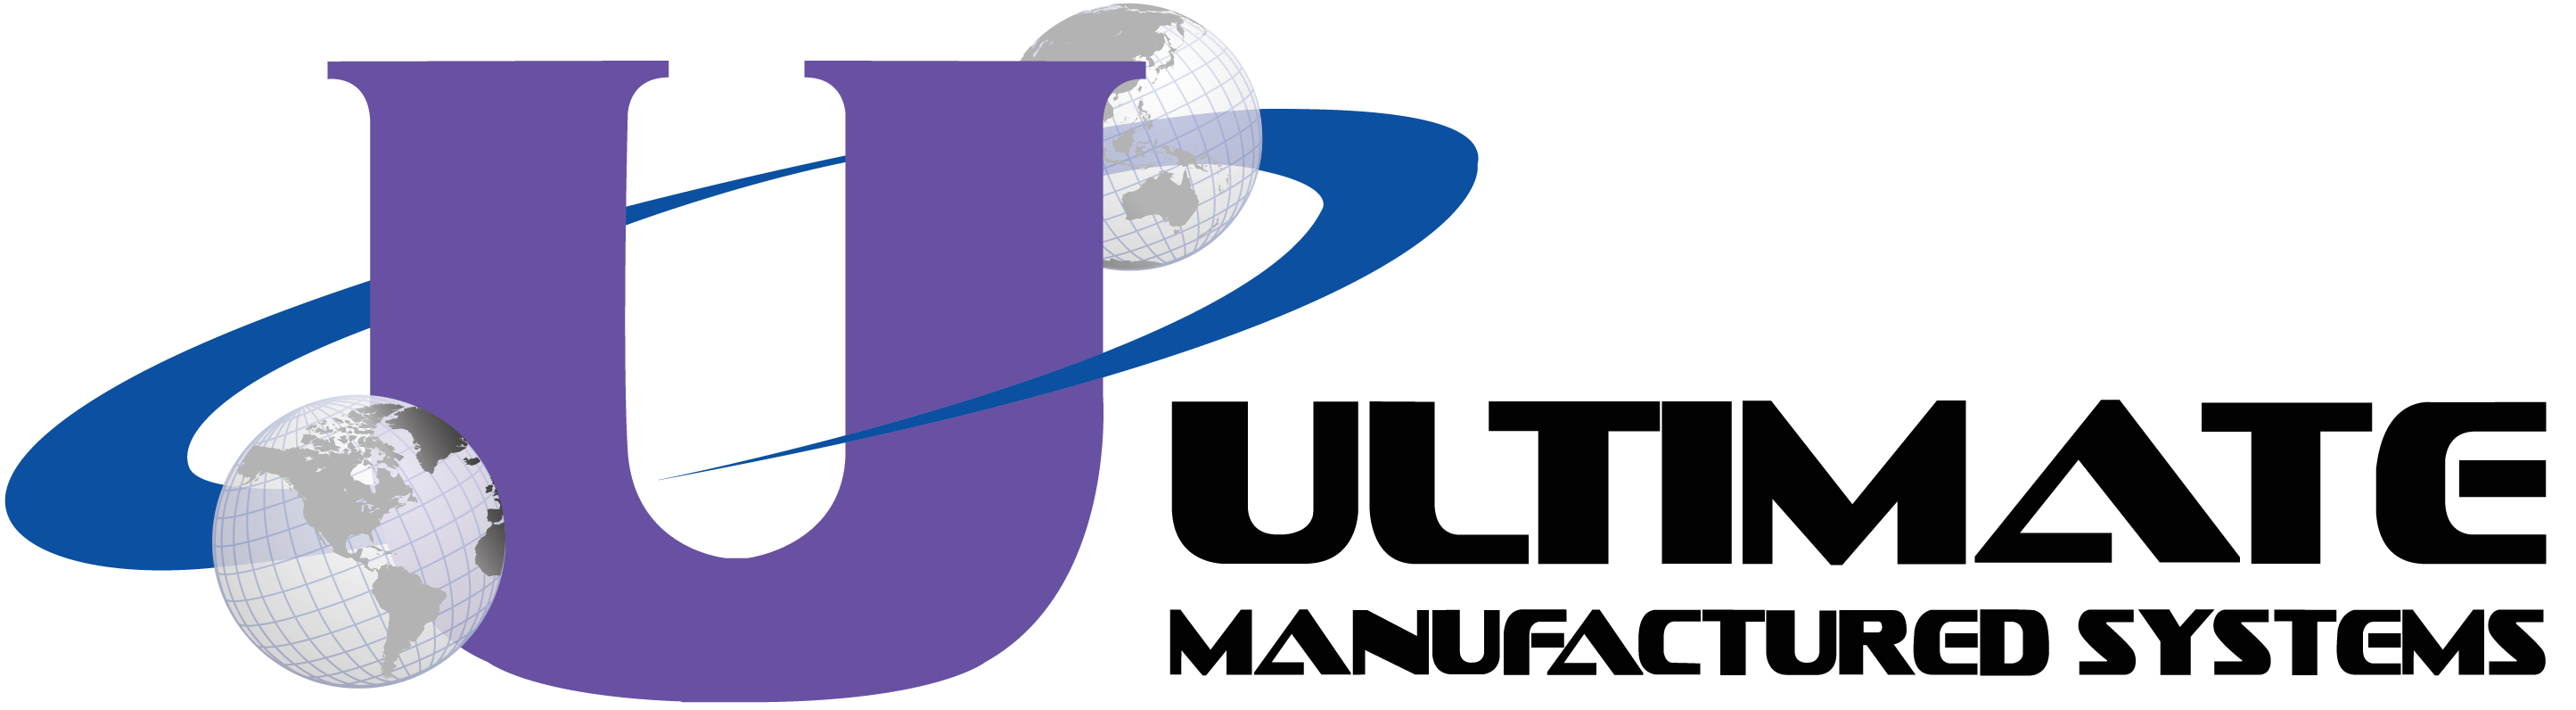 Ultimate Manufactured Systems Inc.